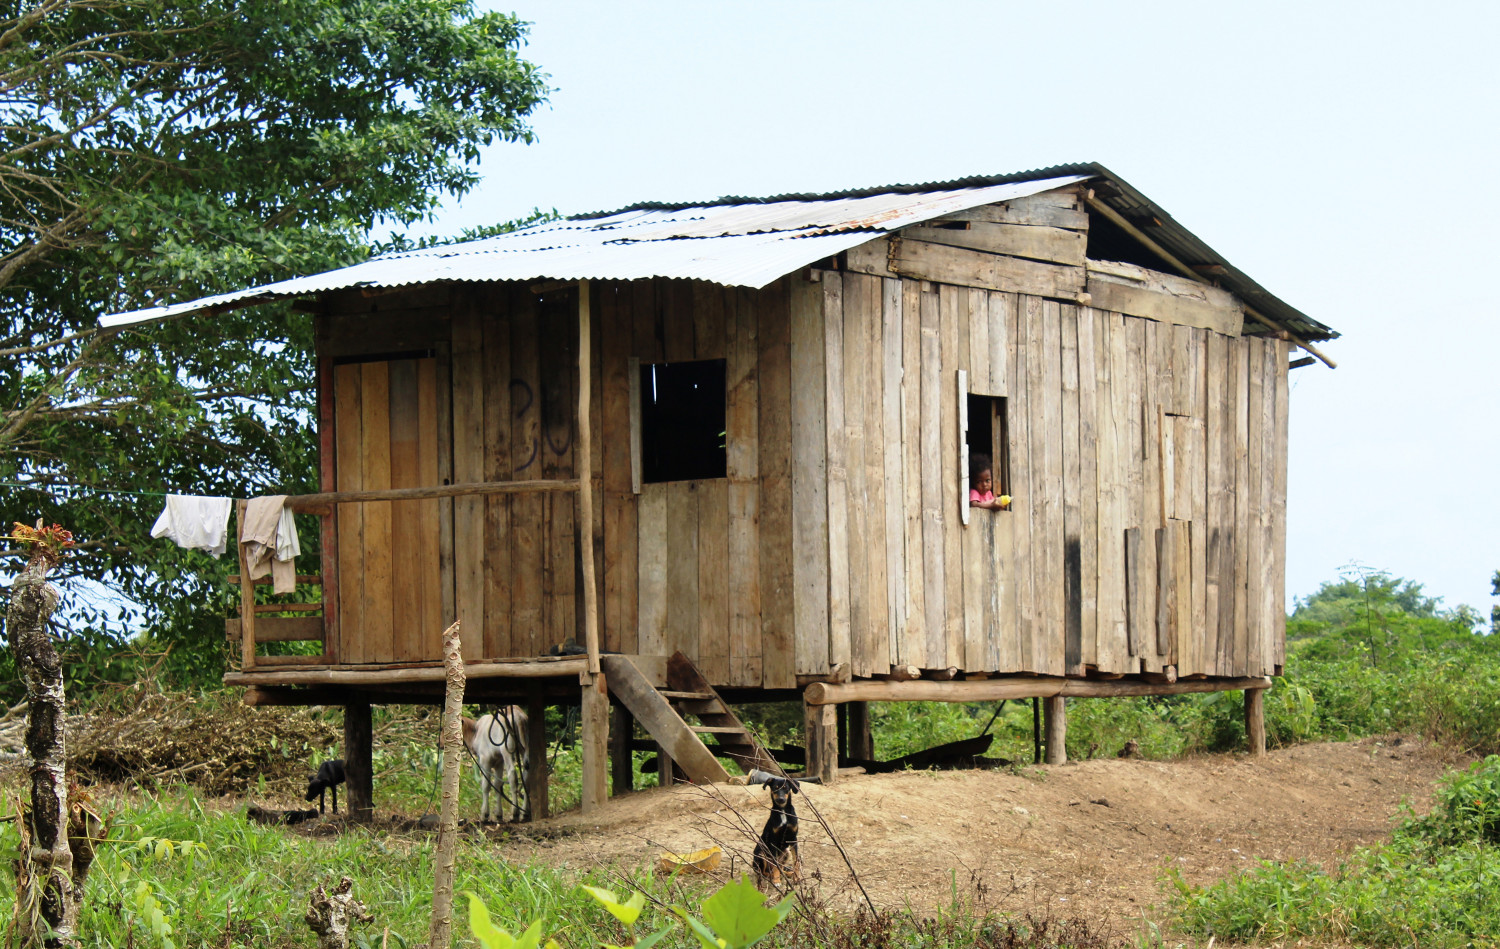 Holzhütte: die Durchschnittsbehausung der meisten Bewohner im tropischen Ecuador | Wooden hut: the type of housing inhabited by most people in tropical Ecuador